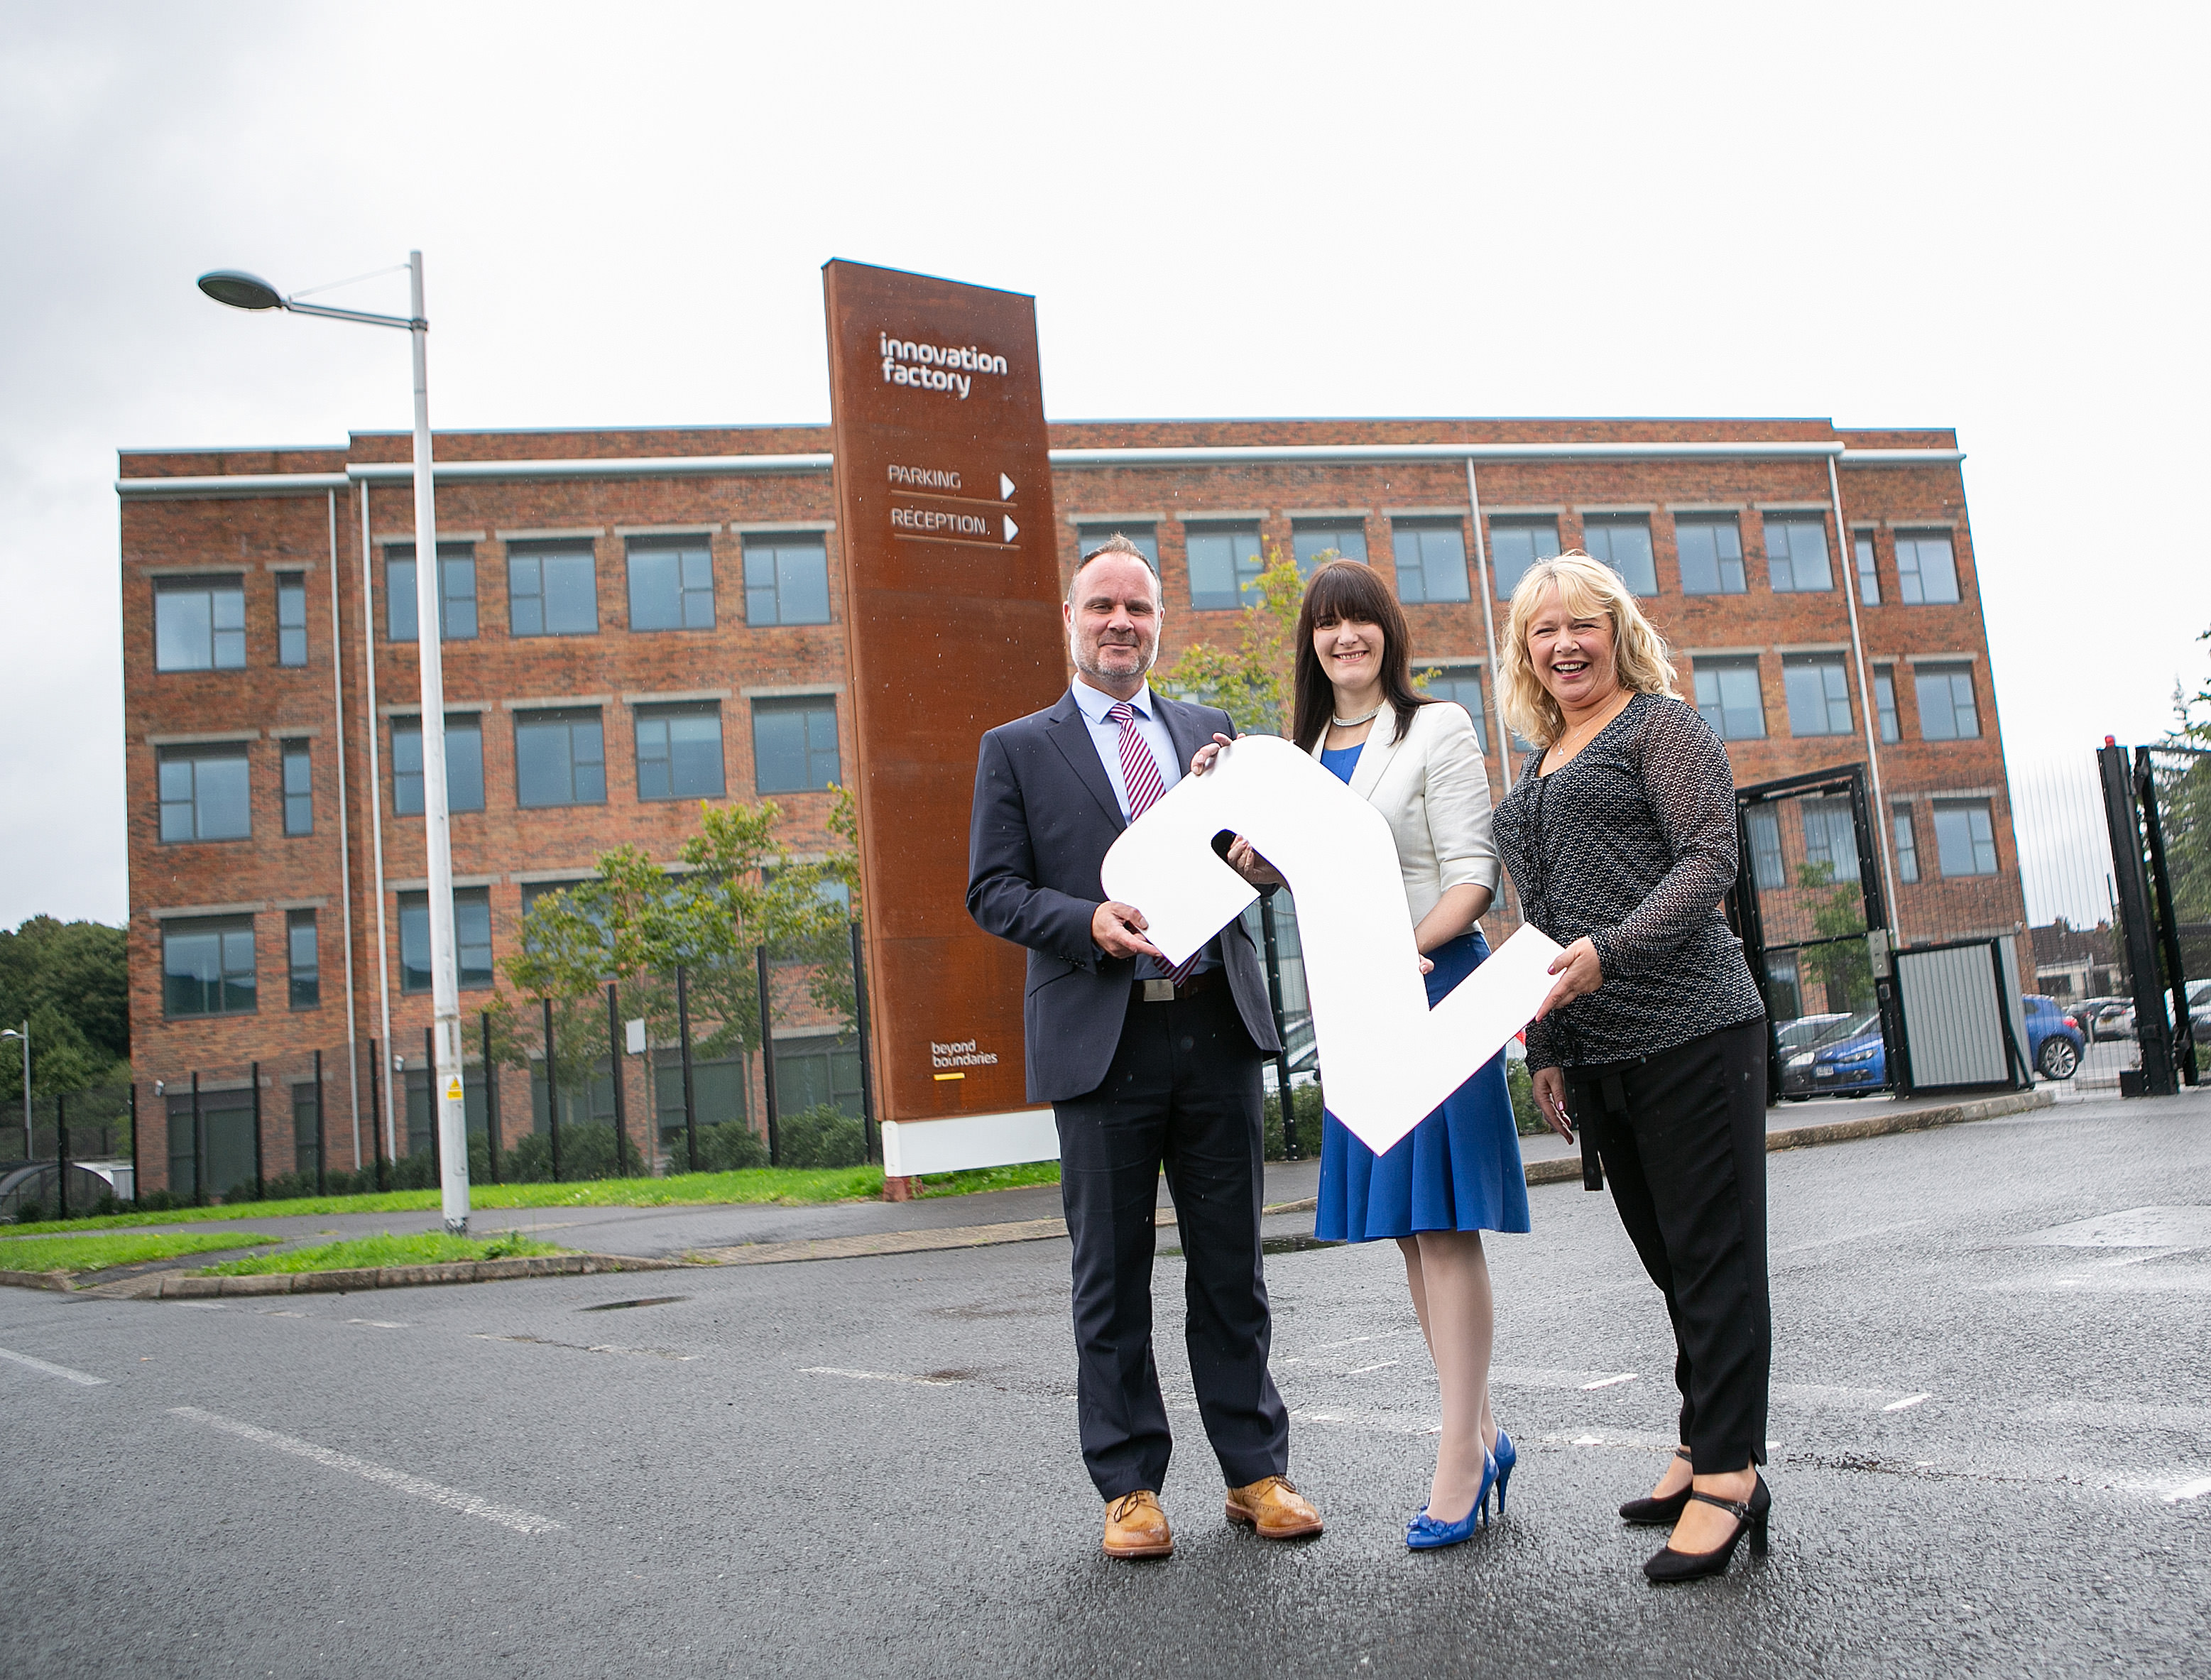 200 jobs created as Innovation Factory celebrates second birthday